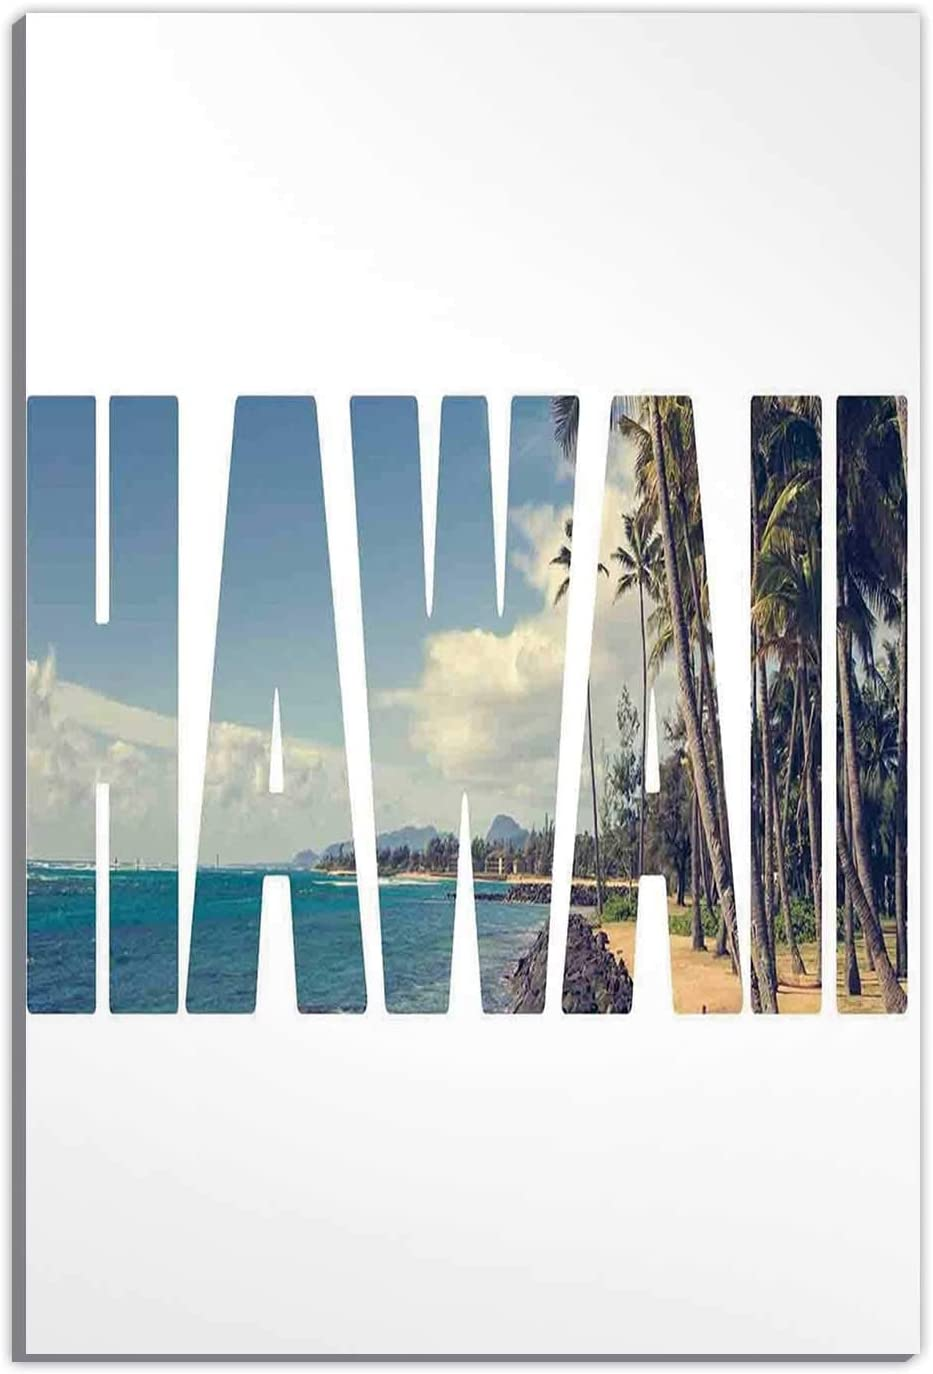 Hitecera Hawaiian,Gifts for Couples,Word Hawaii with Tropical Island Photo Exotic Popular Places Palm Forest by Ocean,Home Decoration,12''x16''